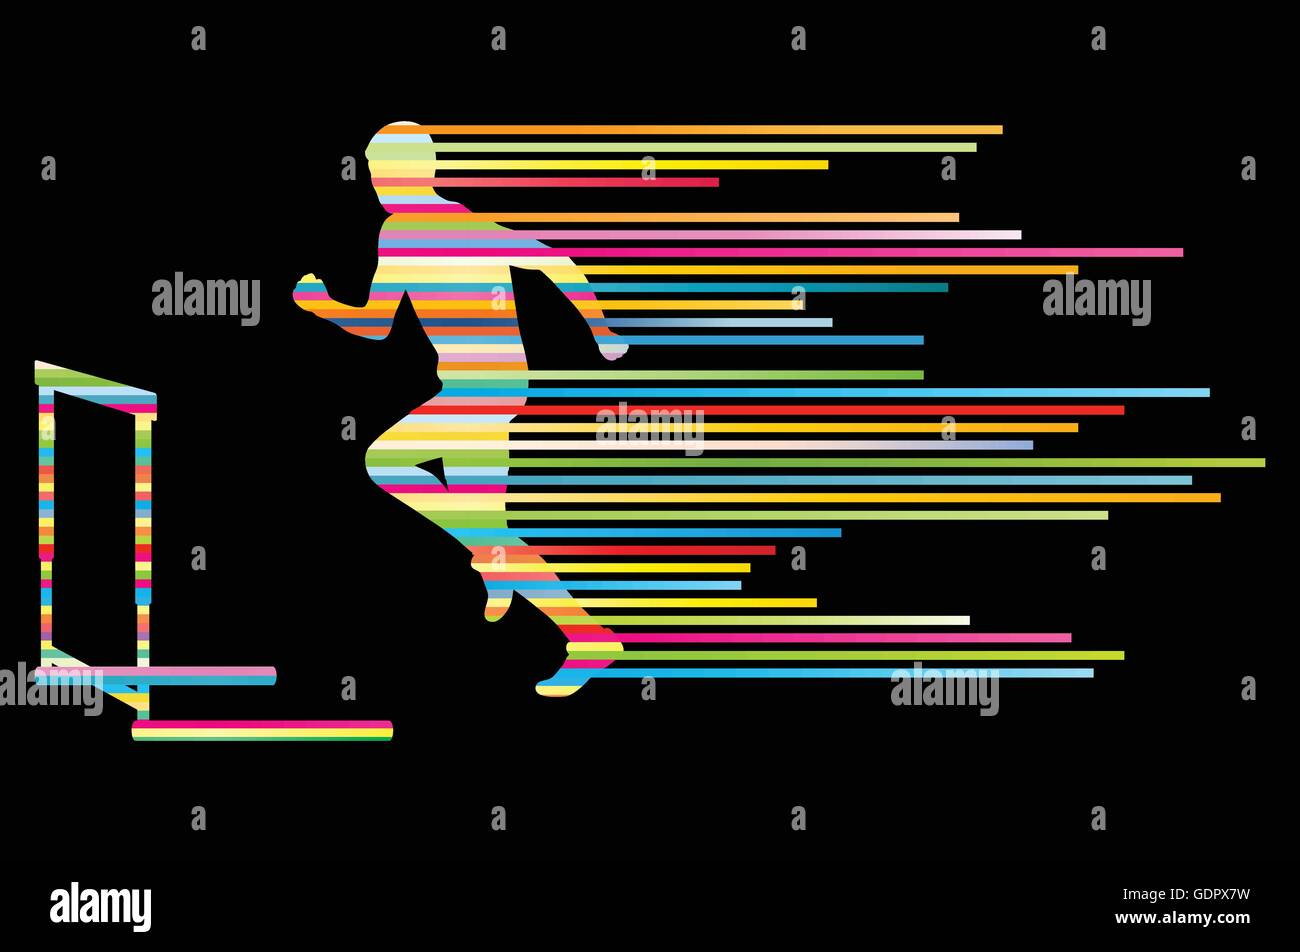 Athlete man hurdling in track and field vector background concept made of stripes Stock Vector